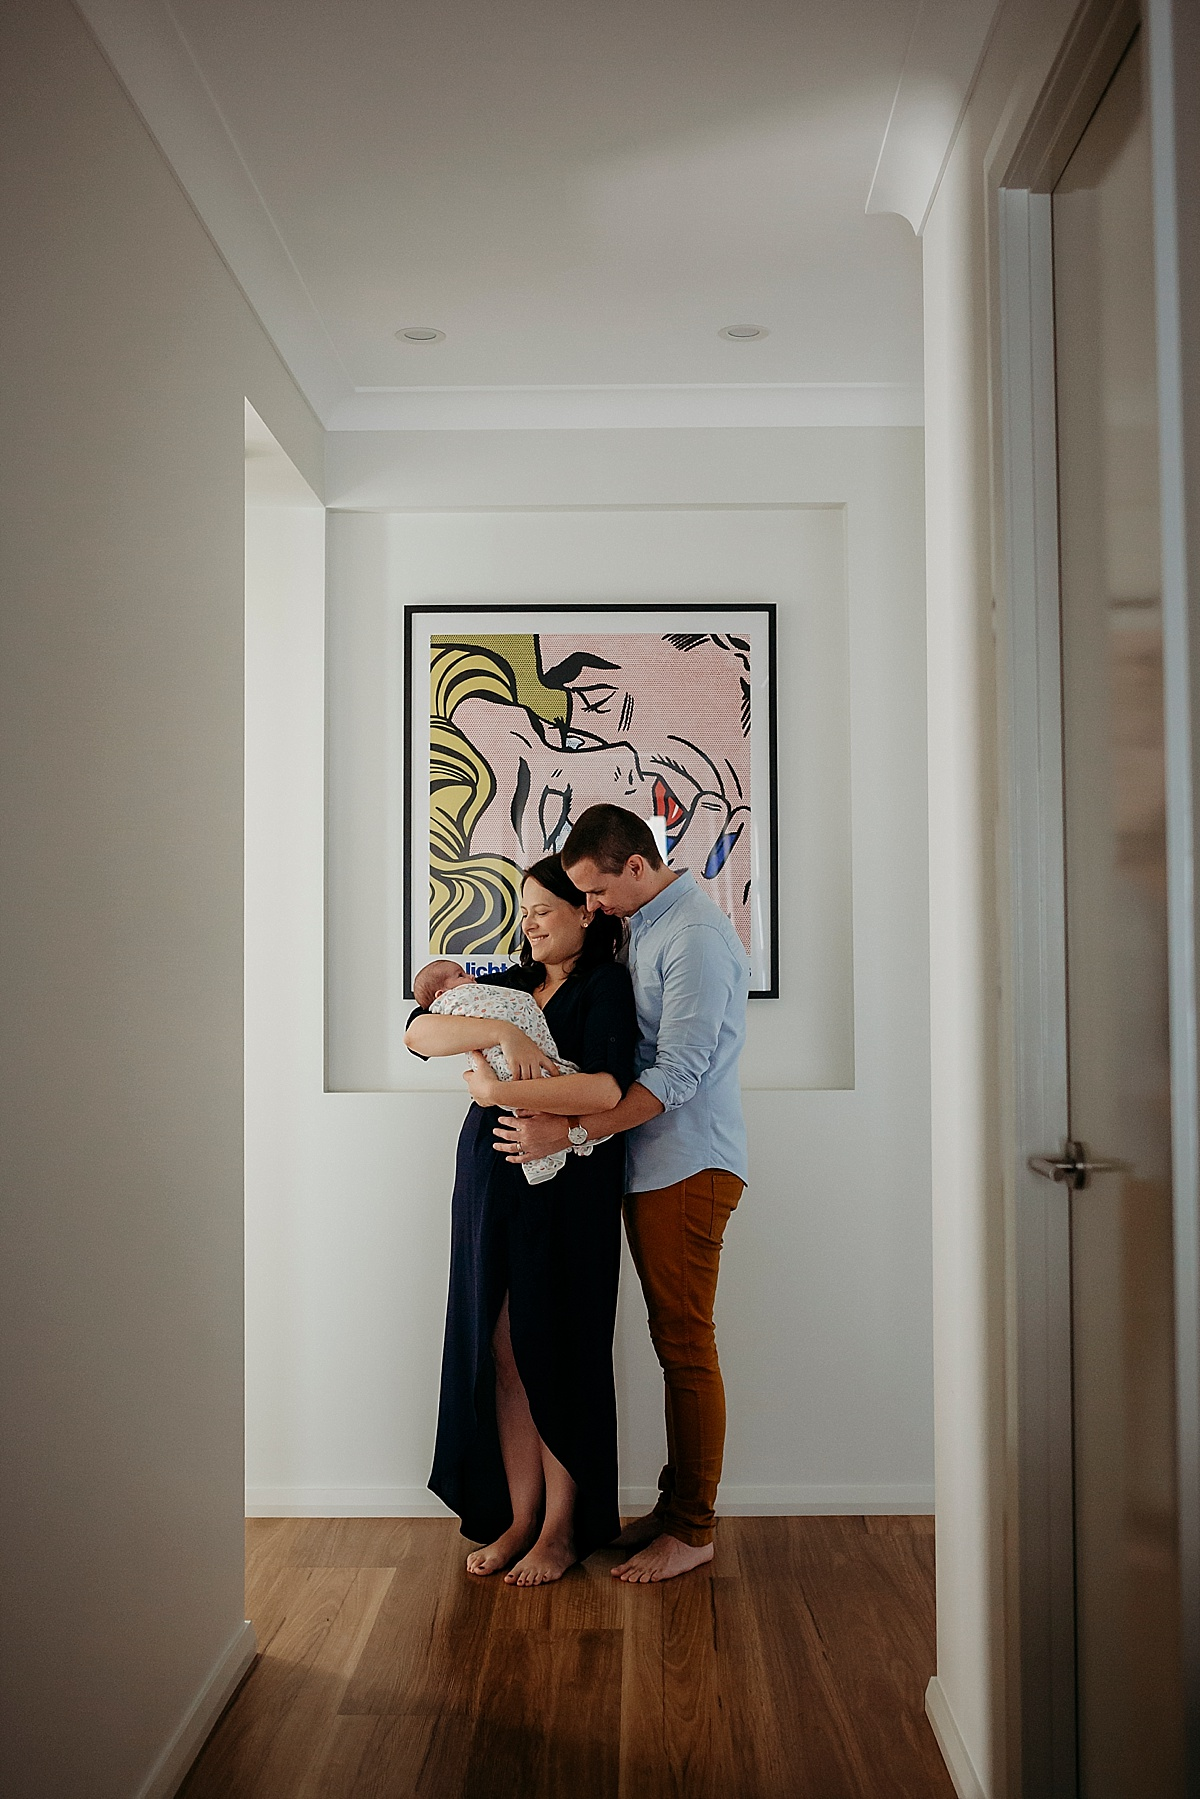 mum standing holding baby, with father hugging from behind, standing at end of hallway in front of artwork